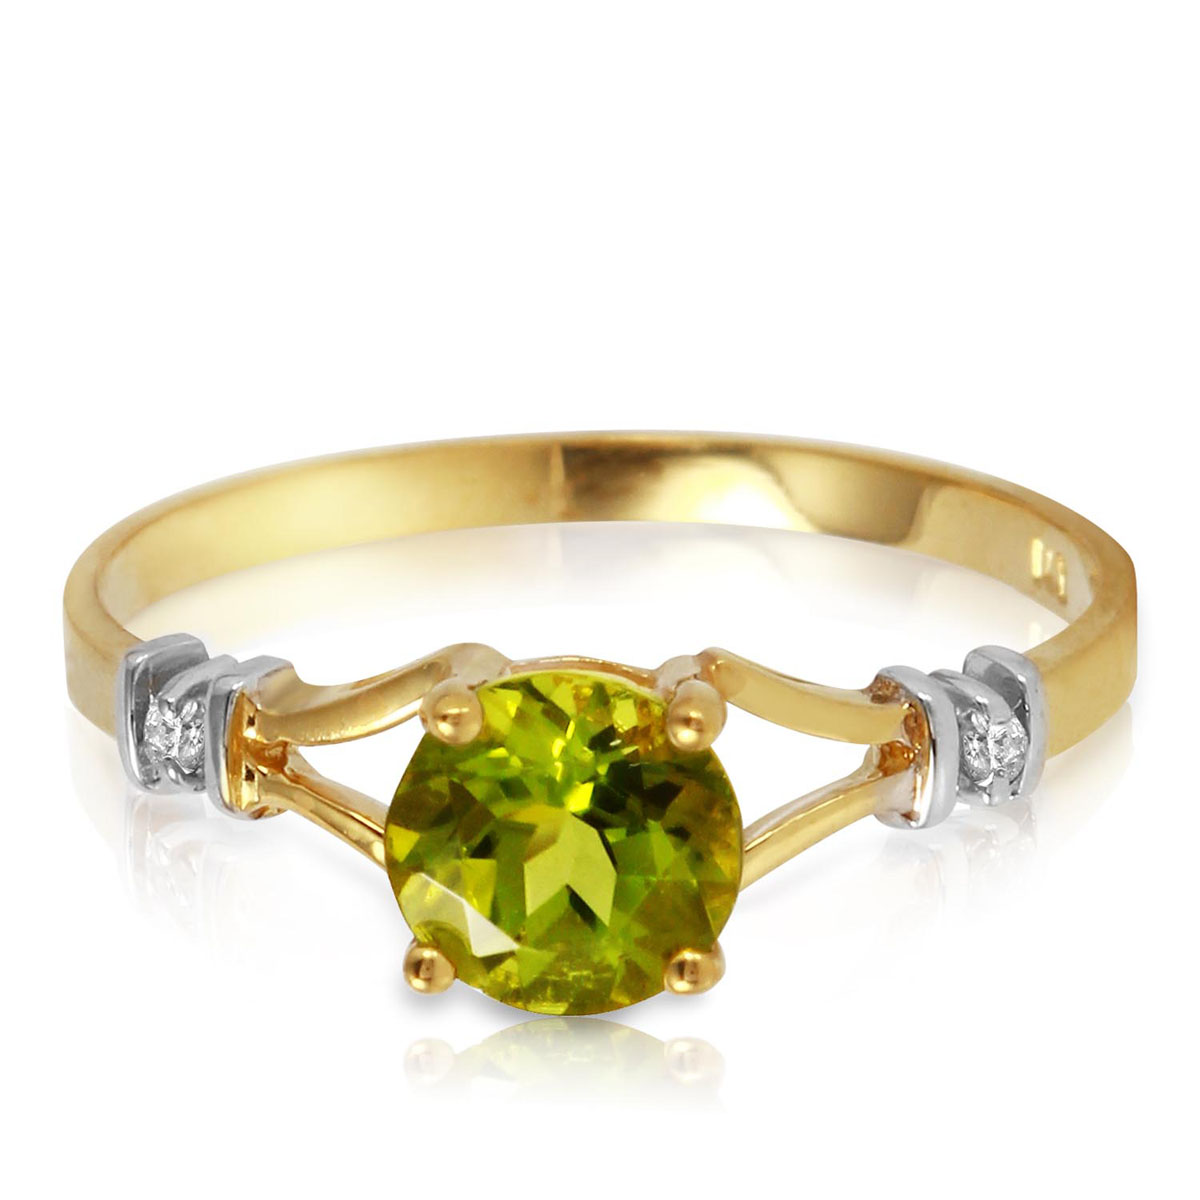 Peridot & Diamond Aspire Ring in 9ct Gold